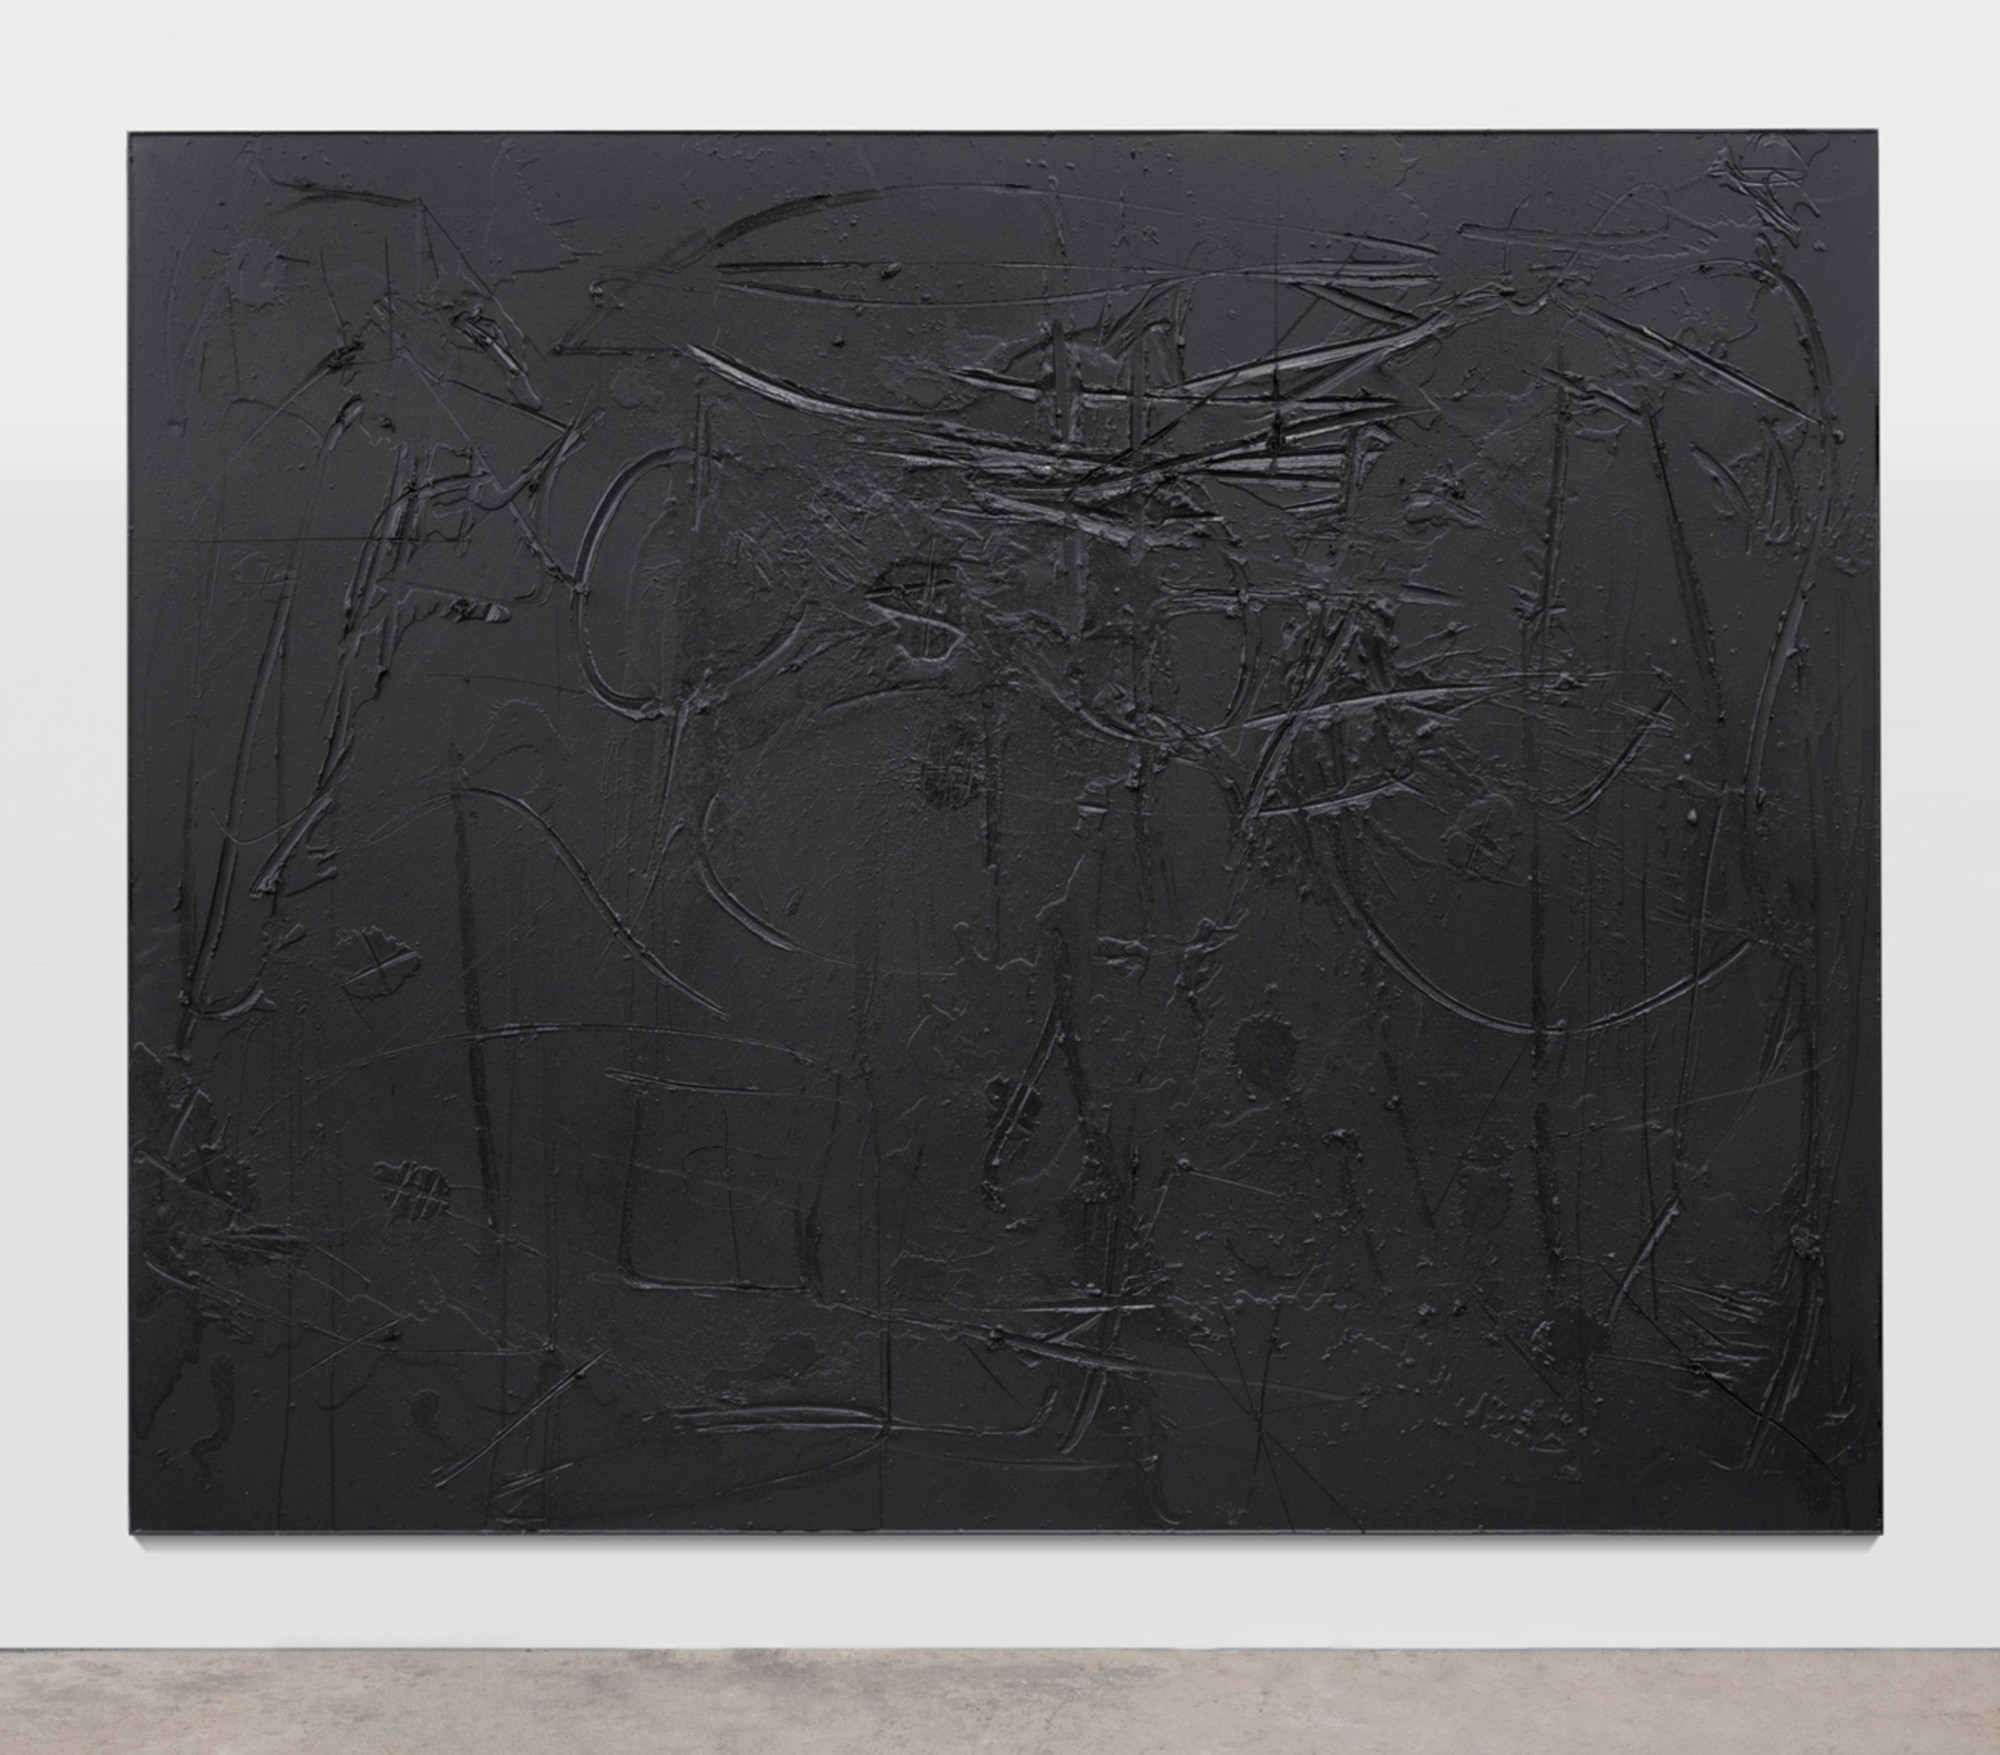 "Rashid Johnson. Cosmic Slop ""Black Orpheus"". 2011. Black soap and wax, 8' 10"" × 10' (243.8 × 304.8). Richard Chang. Courtesy the artist and Hauser & Wirth. Photo: Martin Parsekian"